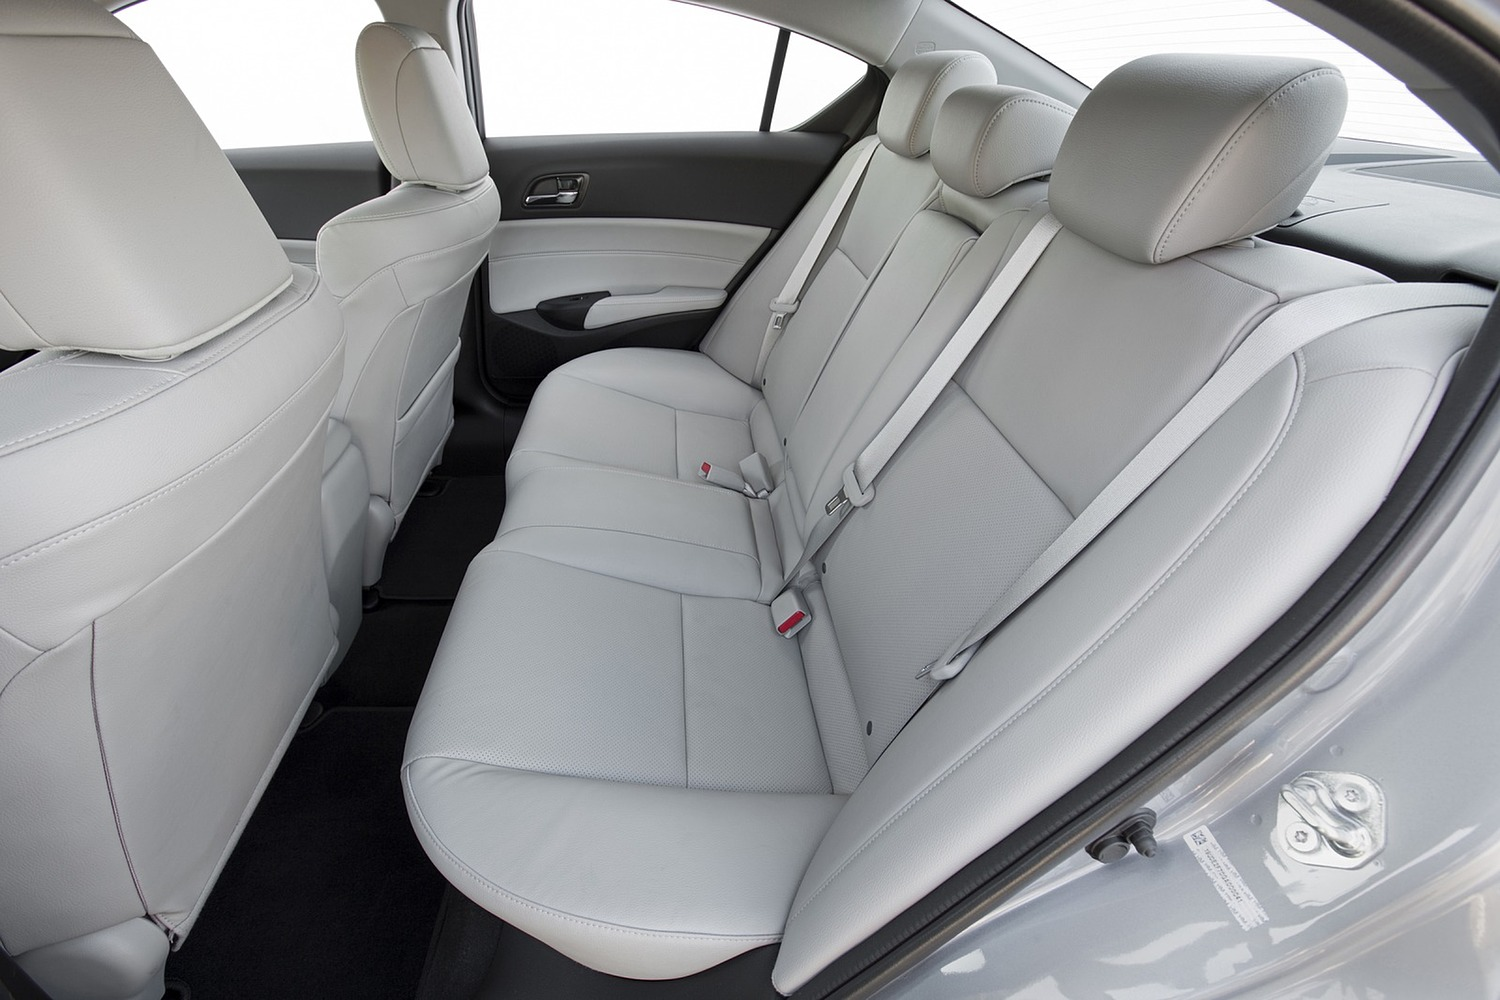 Acura ILX Technology Plus Package Sedan Rear Interior (2016 model year shown)